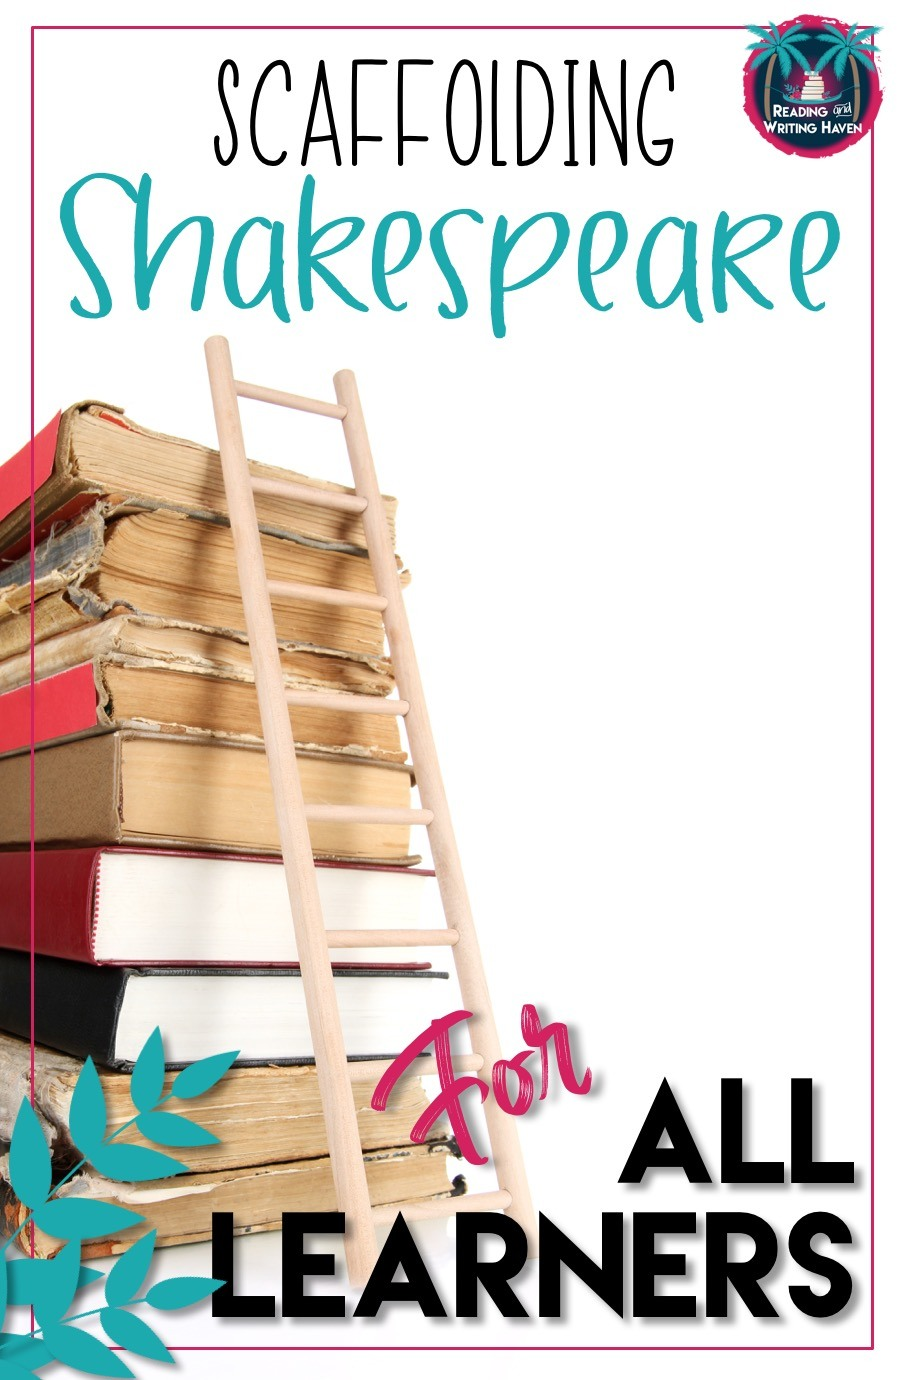 Do you teach Shakespeare? It's difficult to scaffold the text for various learners, but not impossible. Read about different options to support all learners in this post from Reading and Writing Haven.